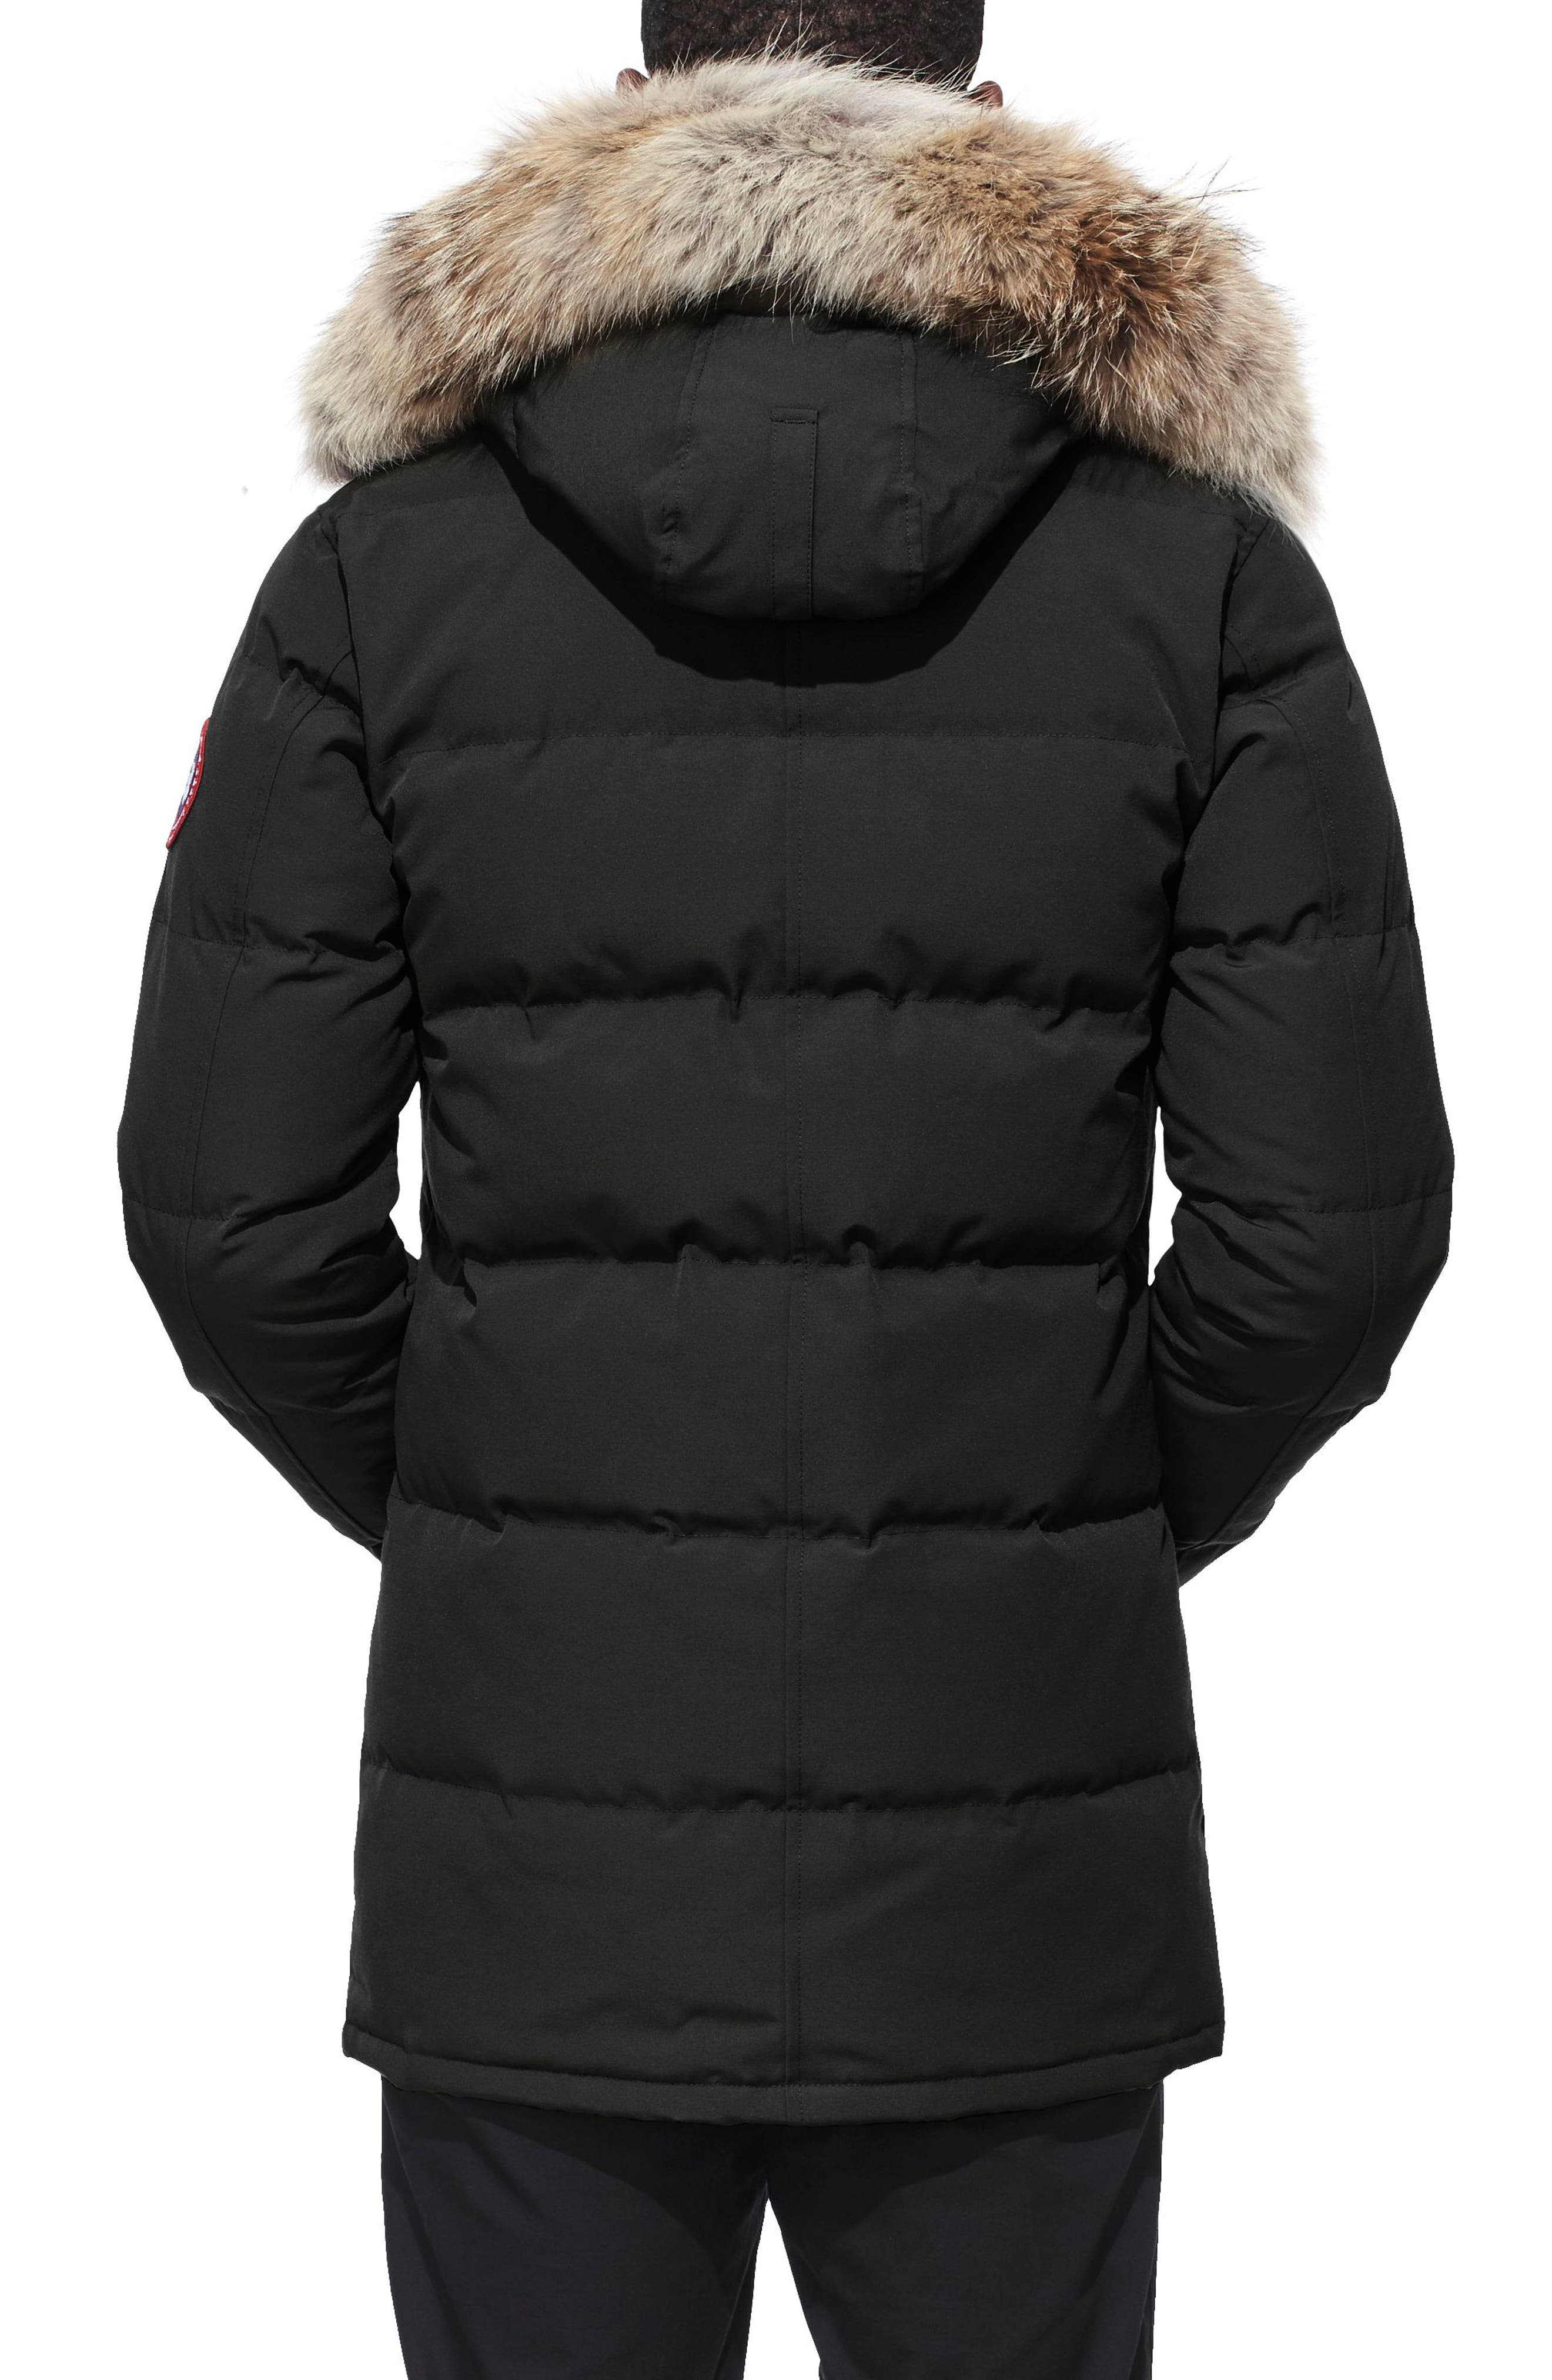 'Carson' Slim Fit Hooded Packable Parka with Genuine Coyote Fur Trim,                             Alternate thumbnail 2, color,                             BLACK